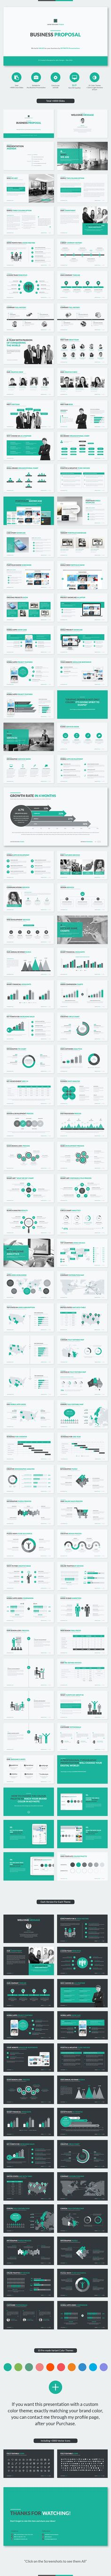 Business Proposal Keynote Template Business Proposal Keynote And